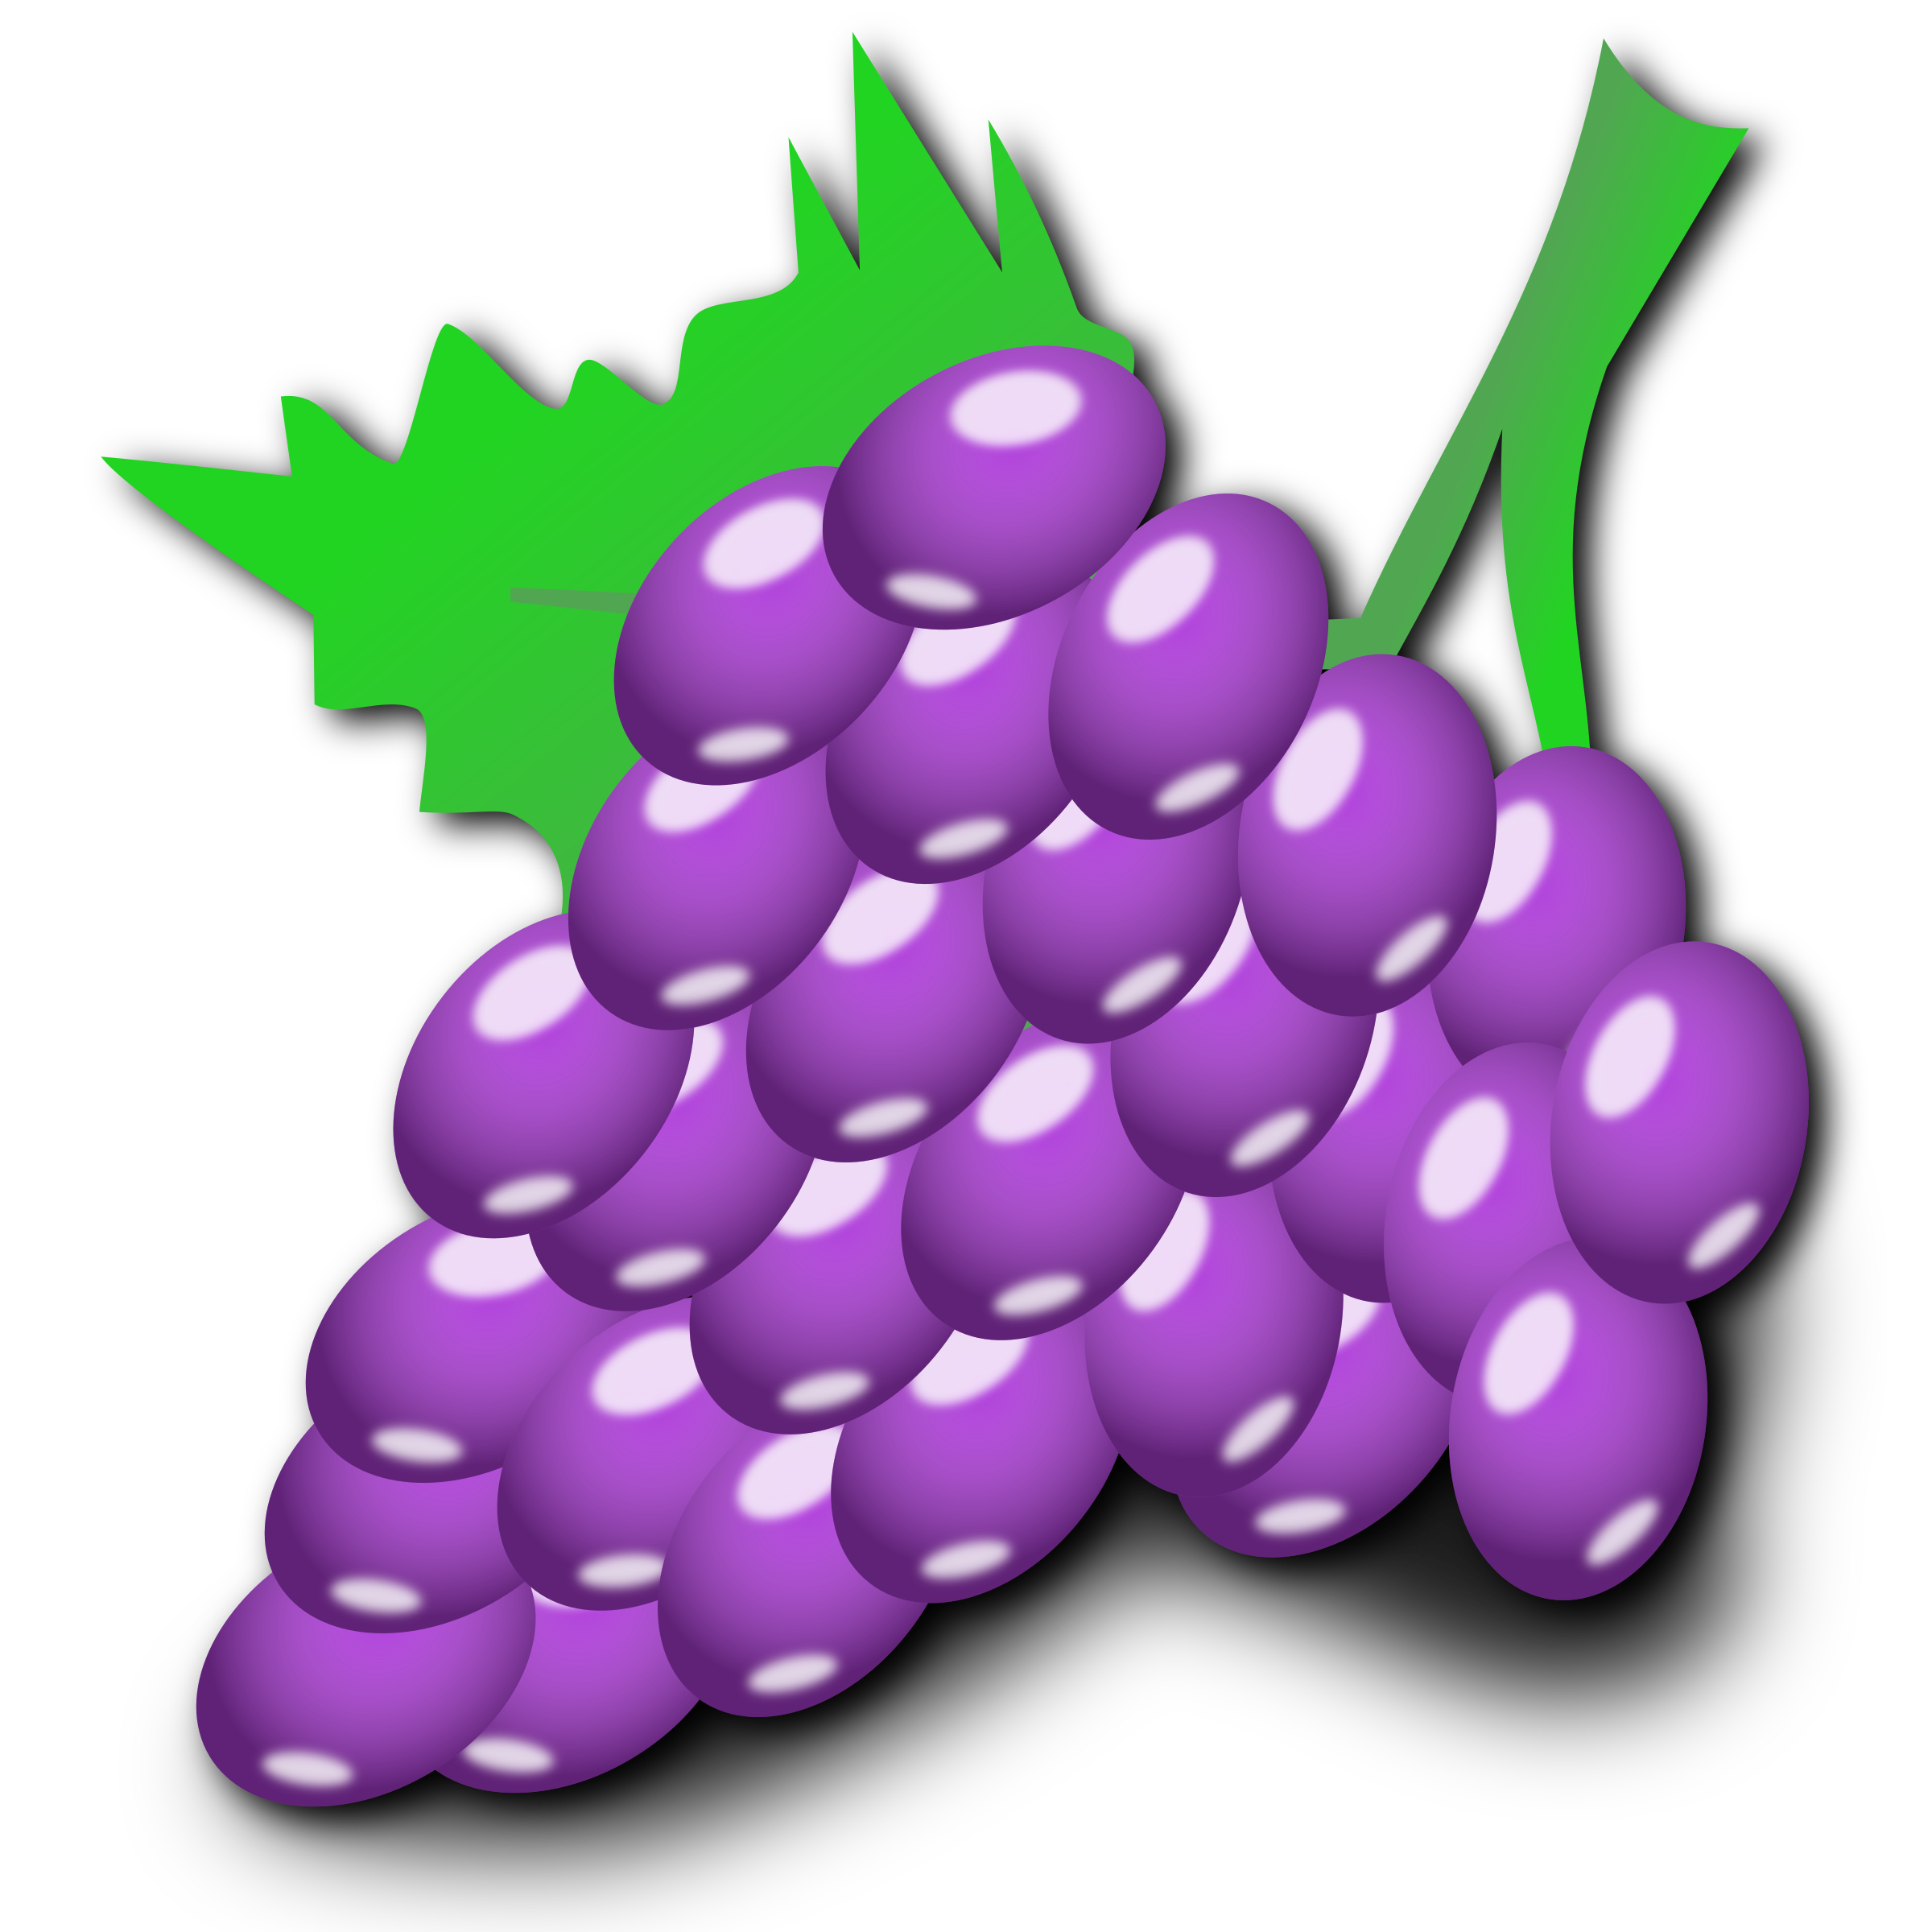 Grapes by nicubunu